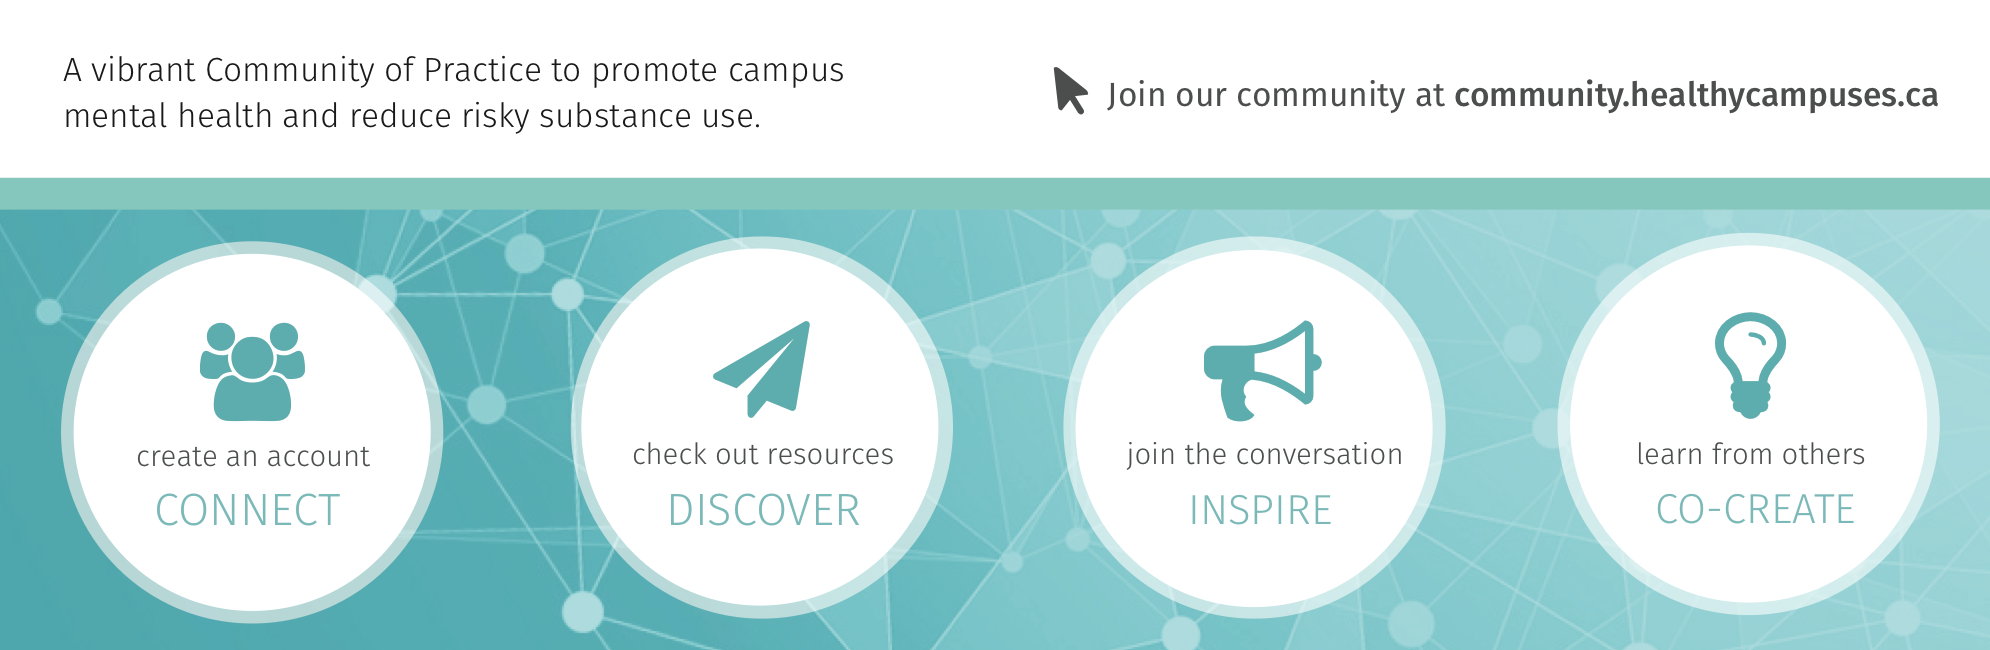 Join our online community at community.healthycampuses.ca